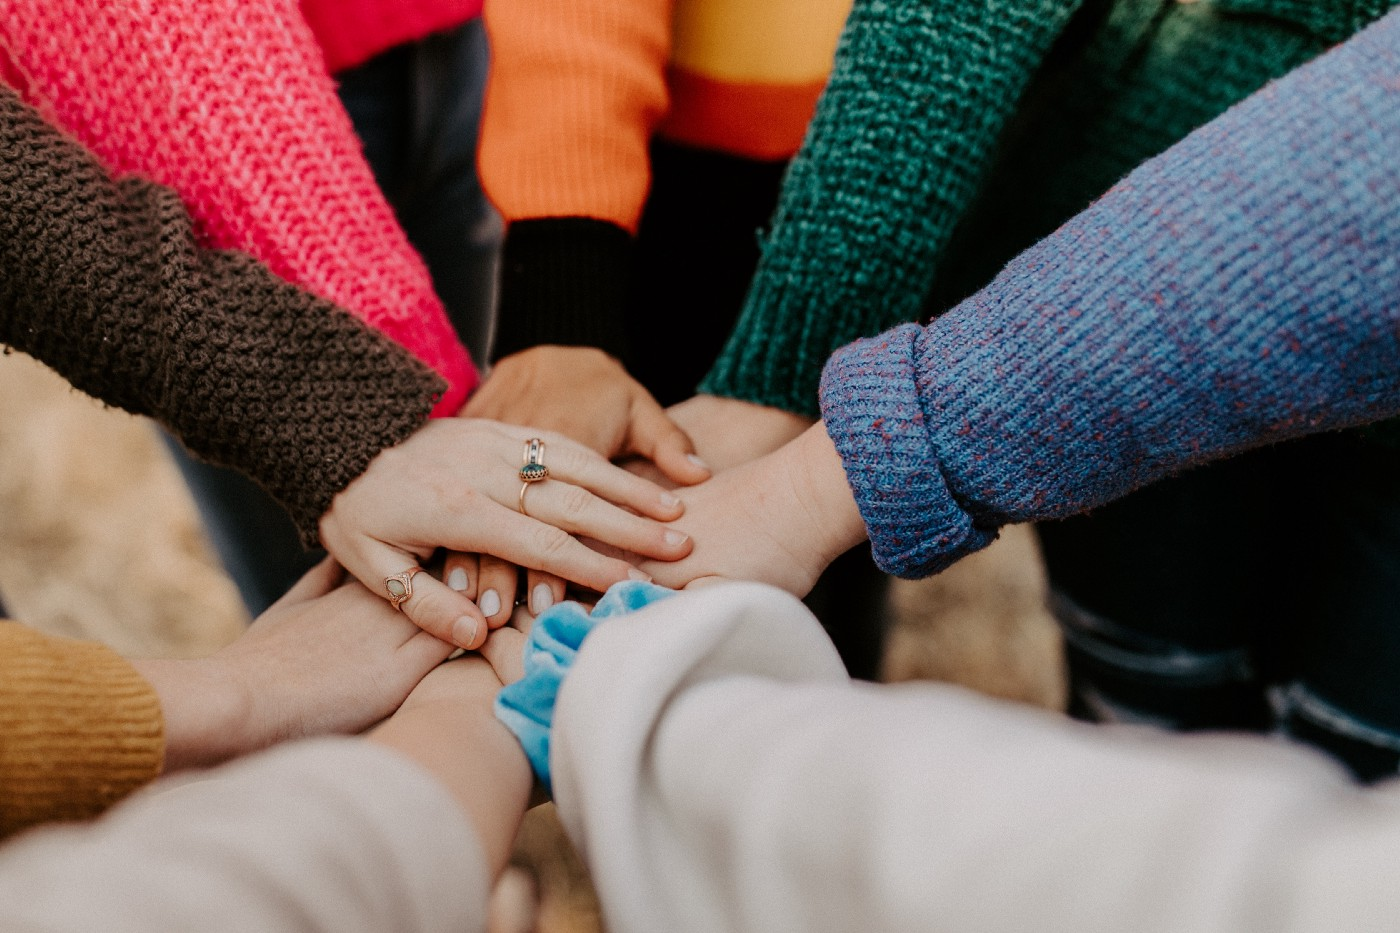 Photo of multiple people placing their hands on top of one another in a gesture of solidarity.